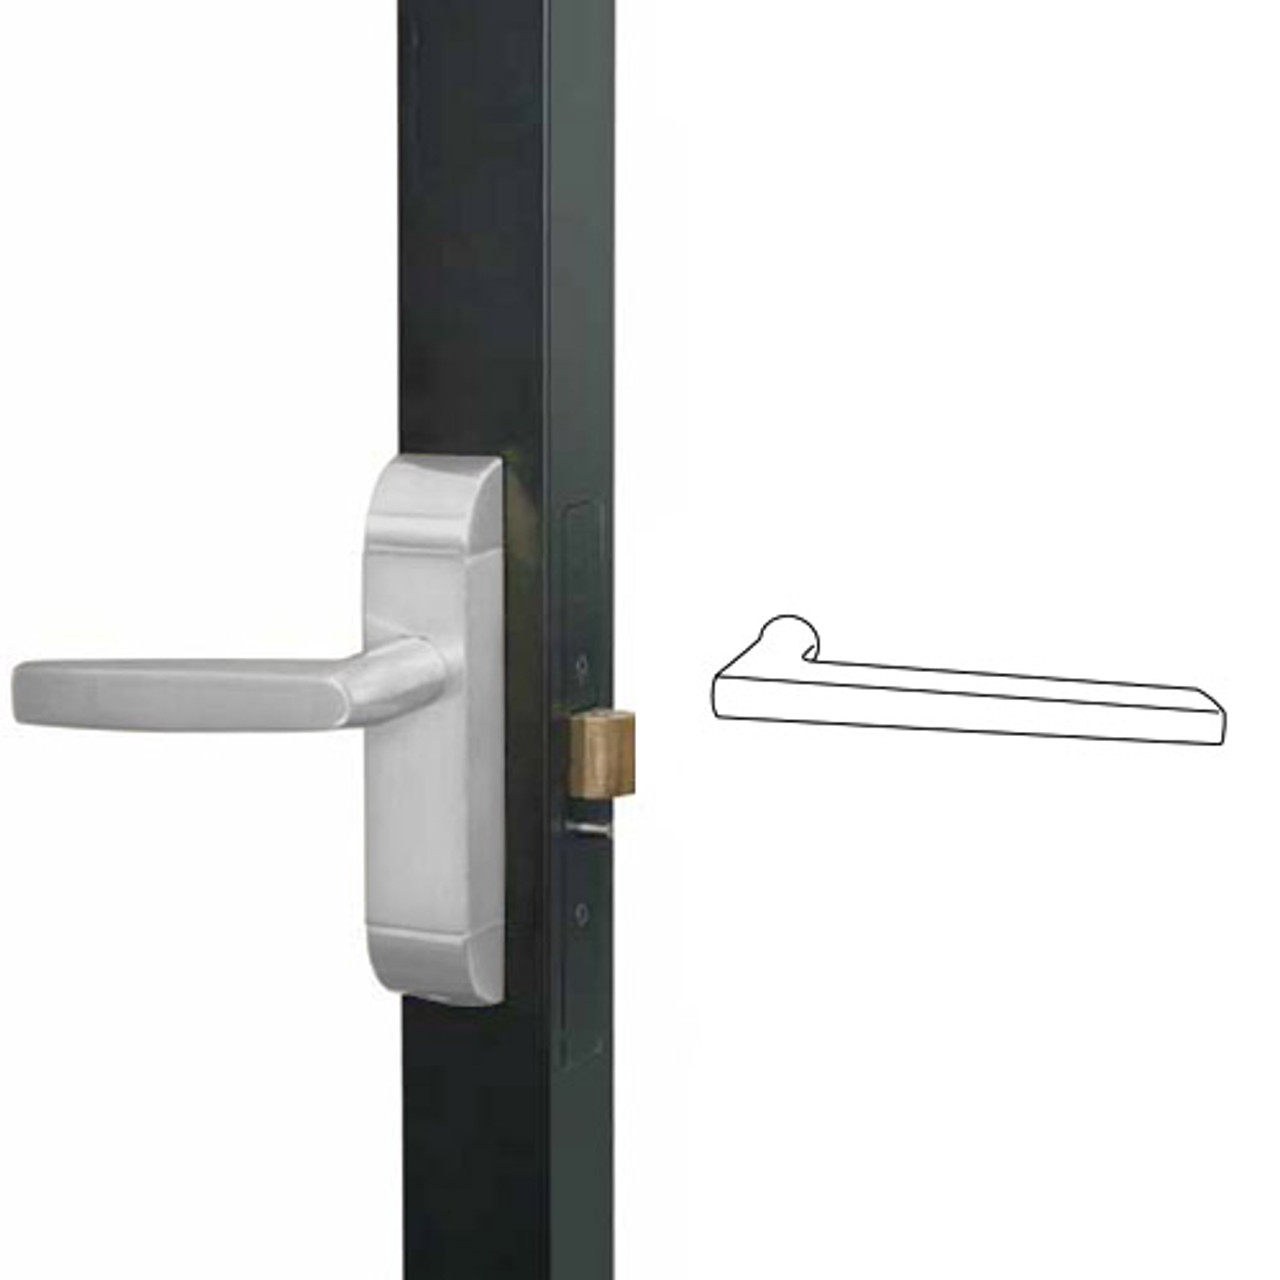 4600-MD-621-US32 Adams Rite MD Designer Deadlatch handle in Bright Stainless Finish